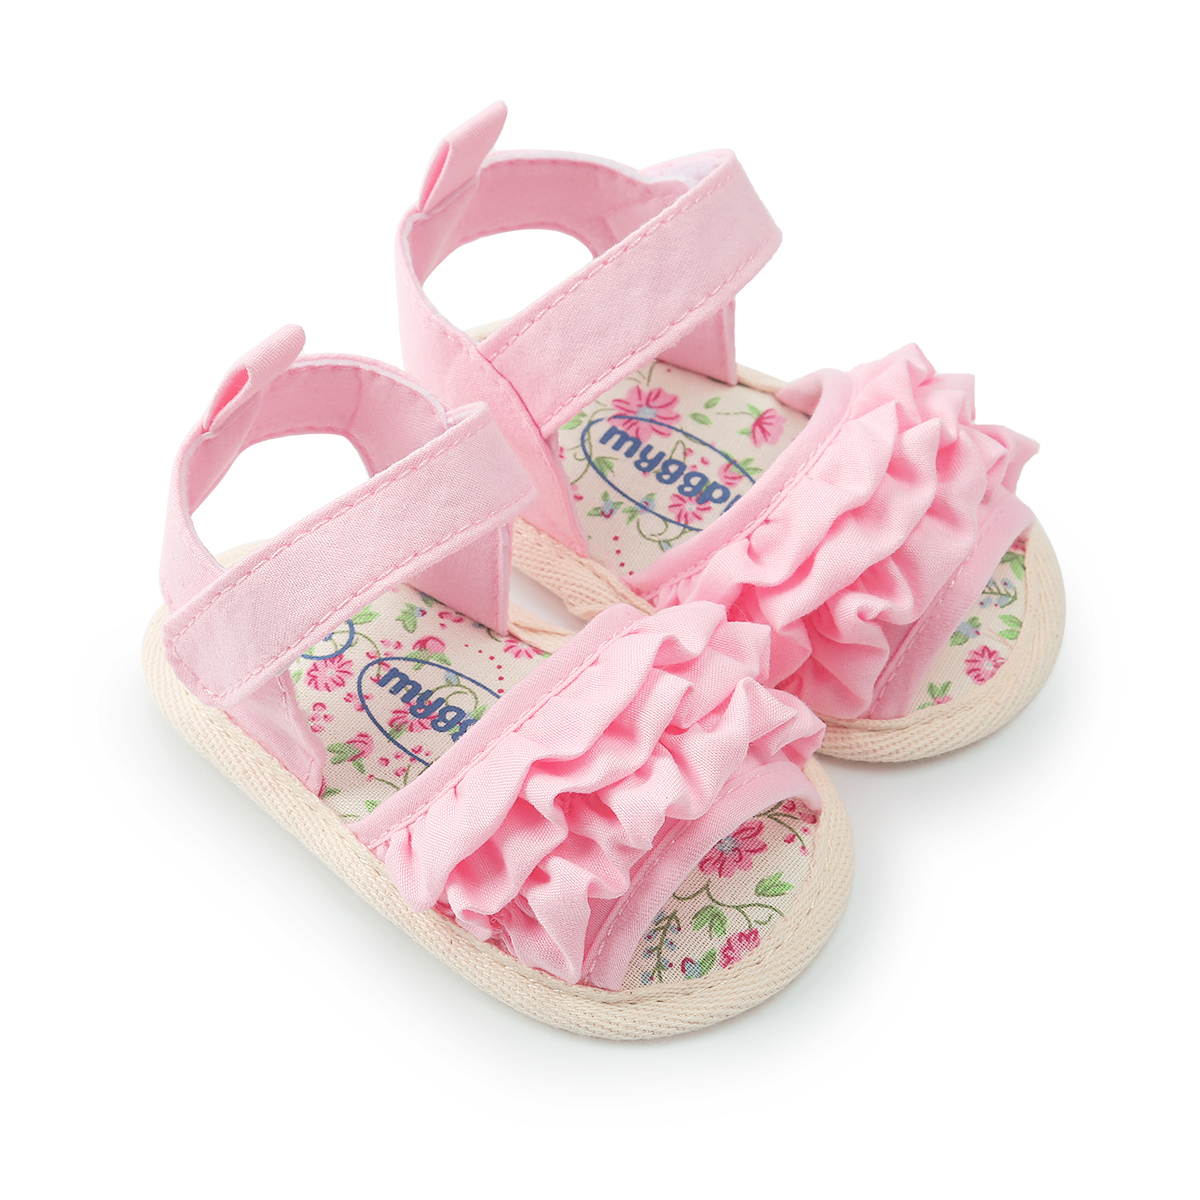 Lovely Baby Girl Sandals Shoes Canvas Flower Baby Toddler Princess